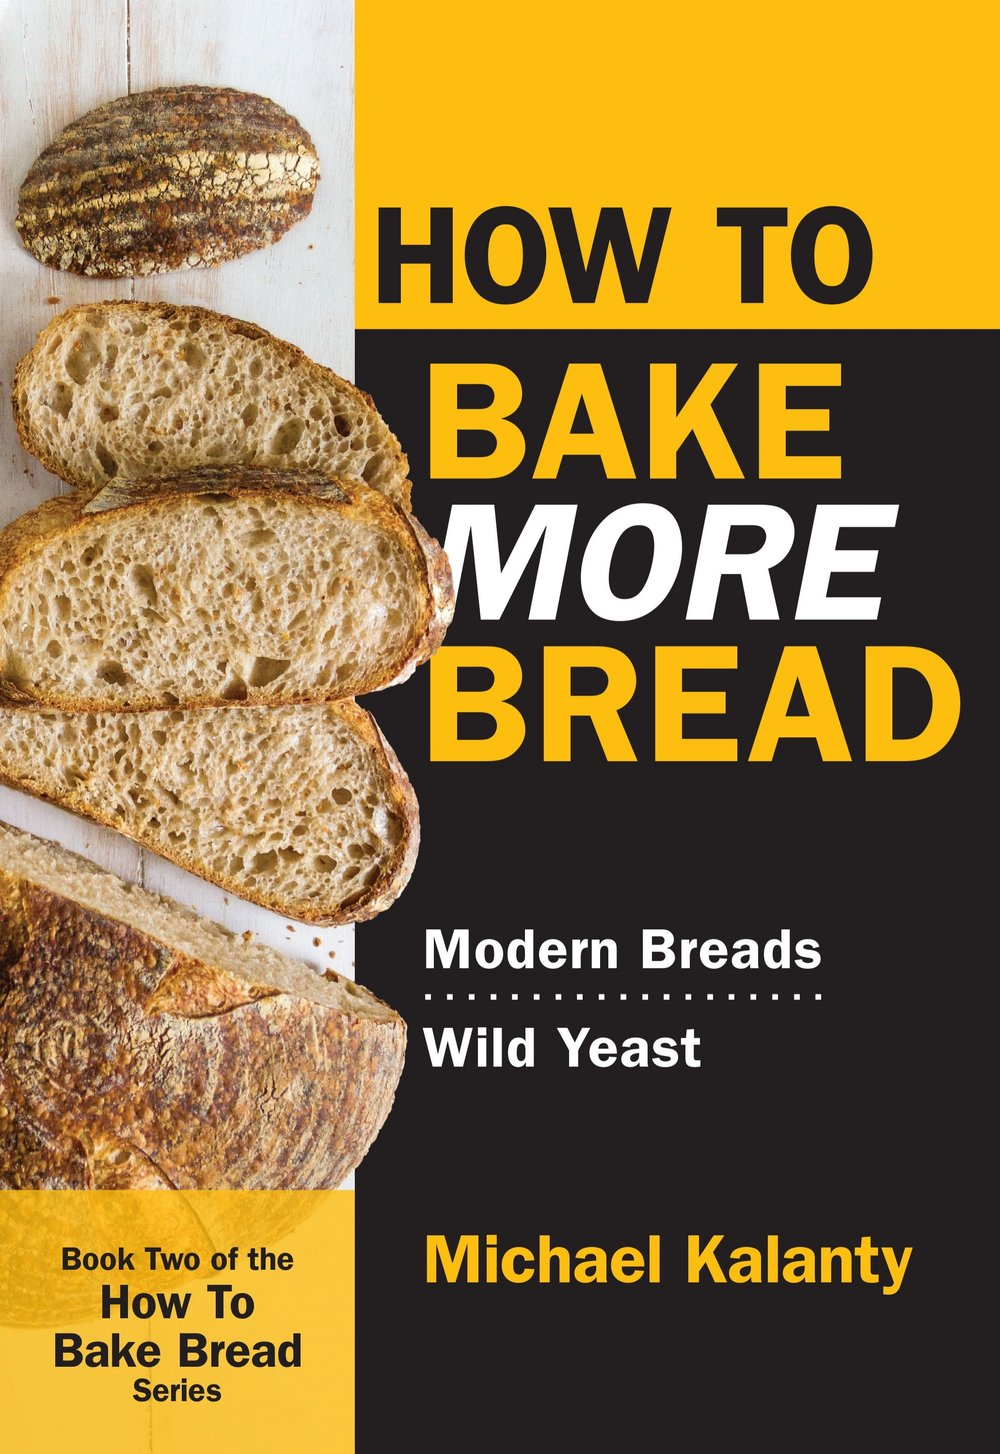 certified-gourmand-sourdough-bread-book-recommended-kalanty-best-sensory-analysis.jpg